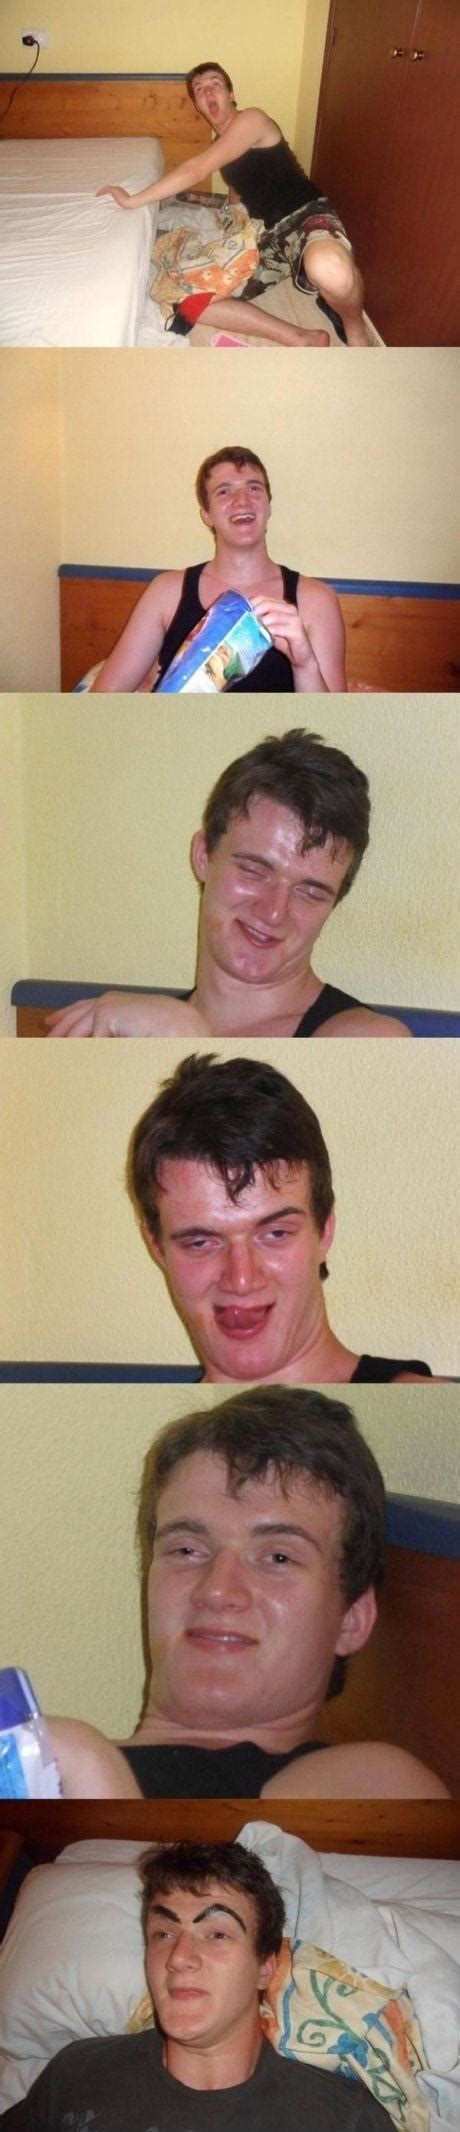 Really Stoned Guy Meme - really high guy meme picture gallery